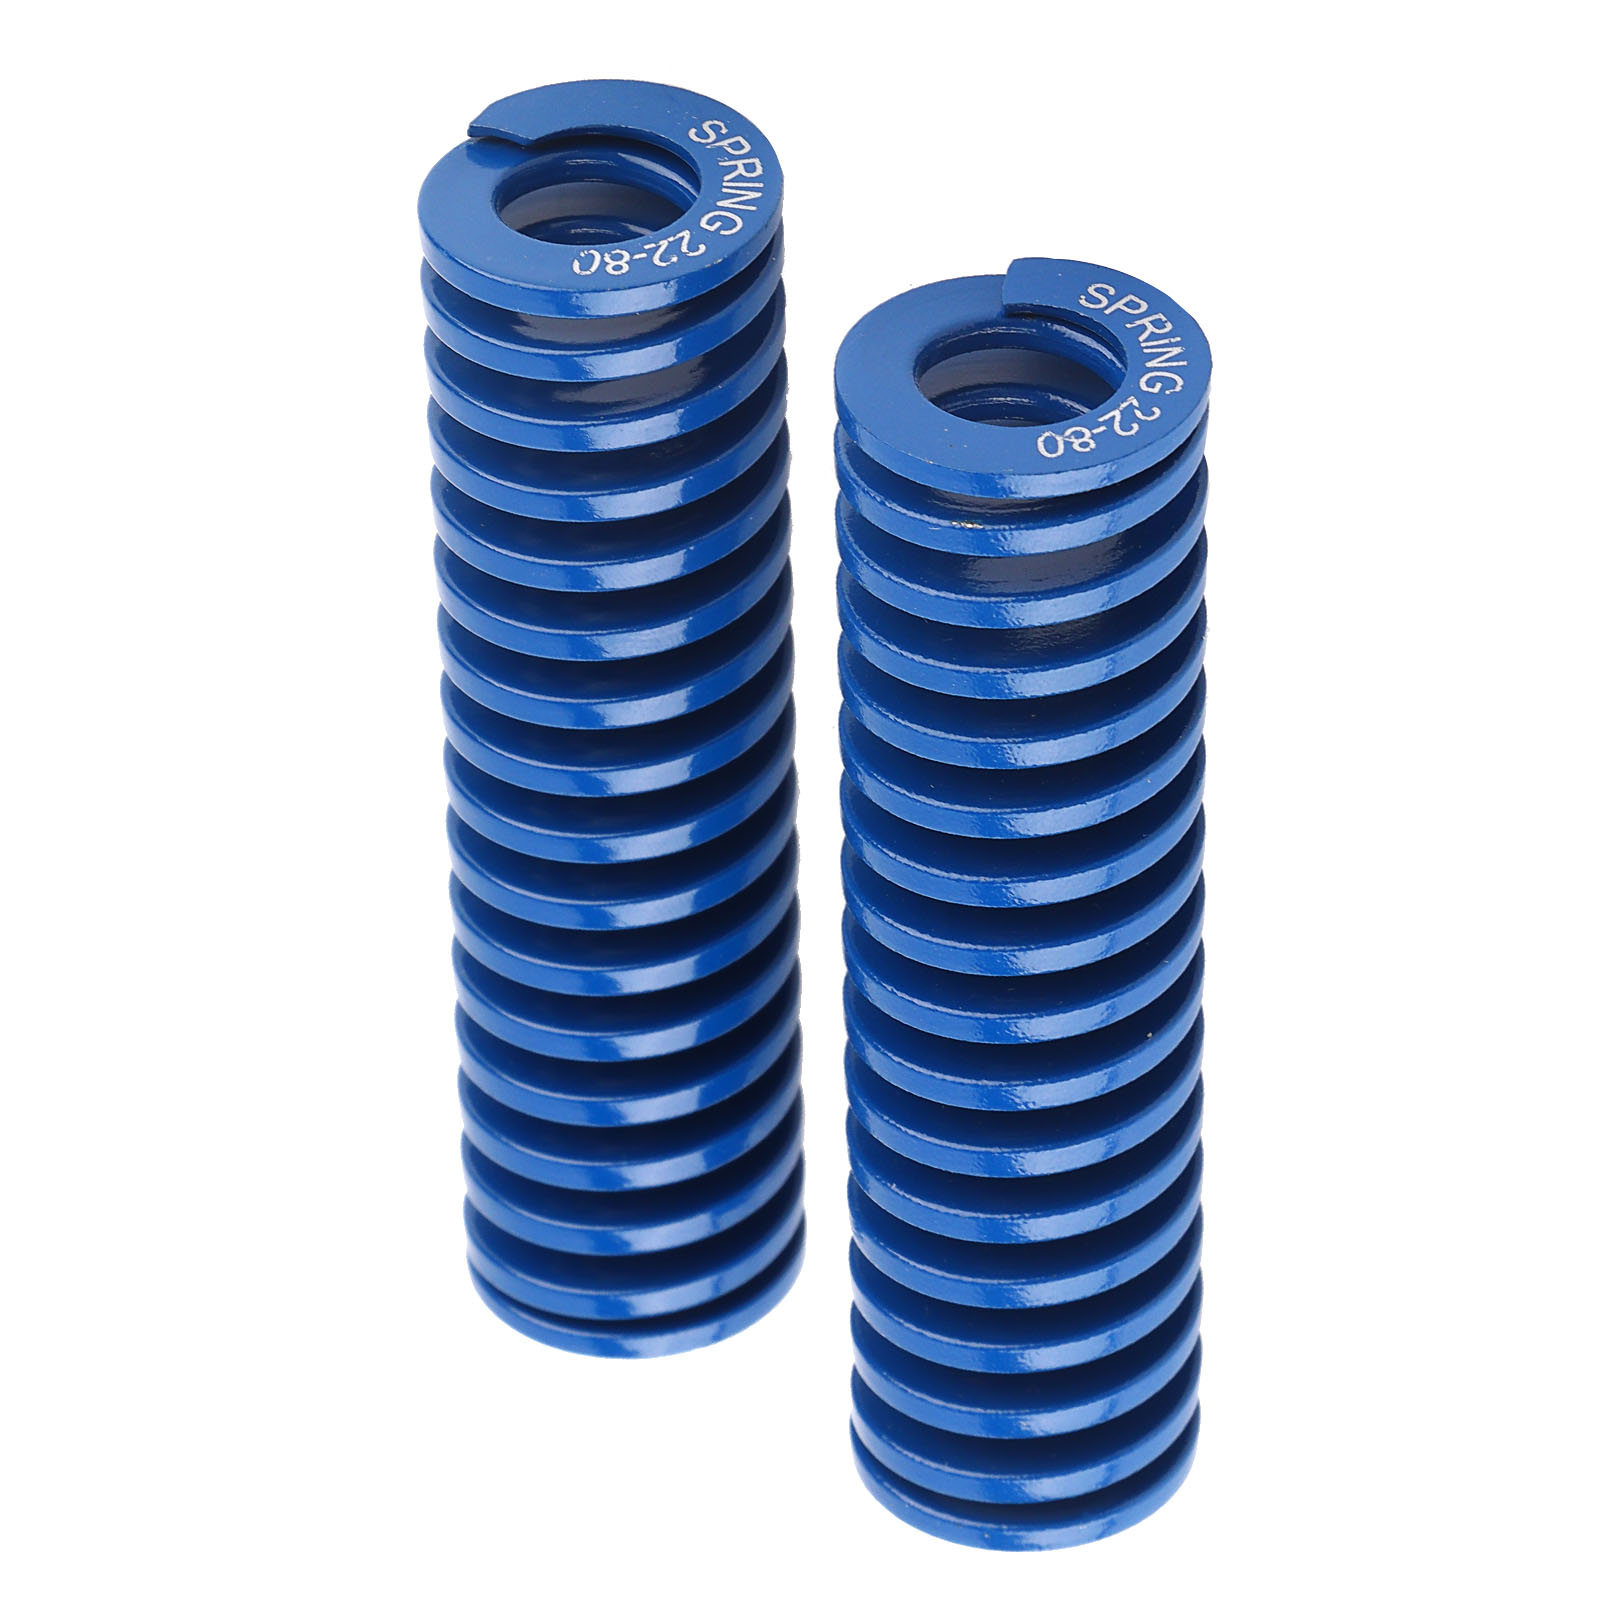 2pcs-Die-Spring-OD-22mm-ID-11mm-65MN-Steel-Light-Load-Mould-Die-Spring-Blue thumbnail 21